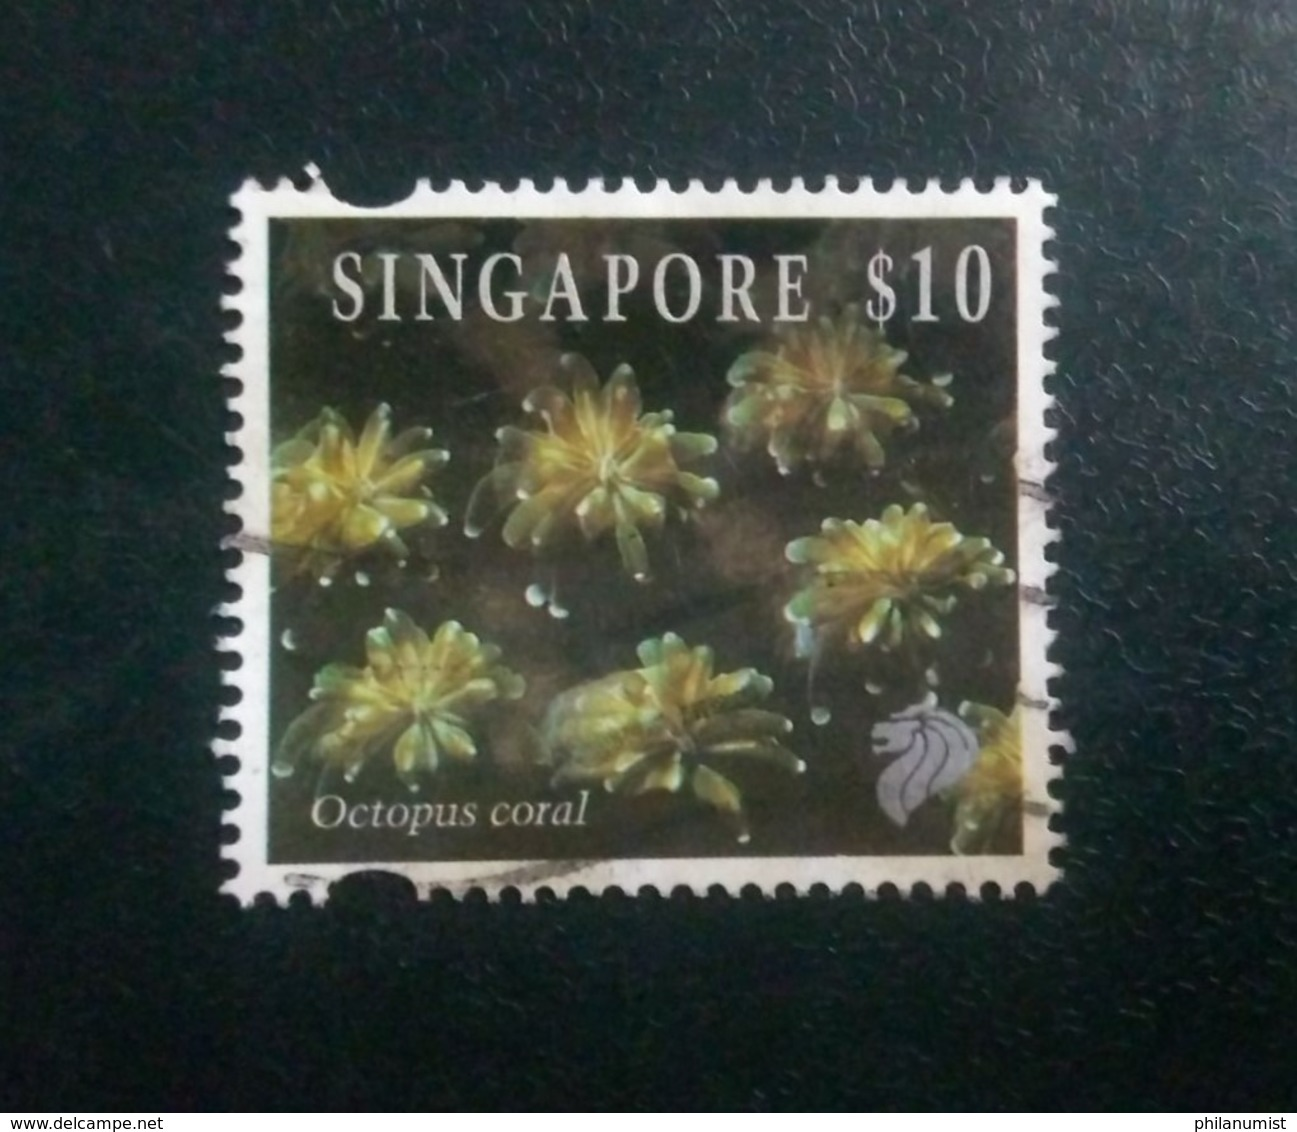 SINGAPORE $10 OCTOPUS CORALS HIGH VAL DEFINITIVE 1994 CAT£10 USED !! - Marine Life